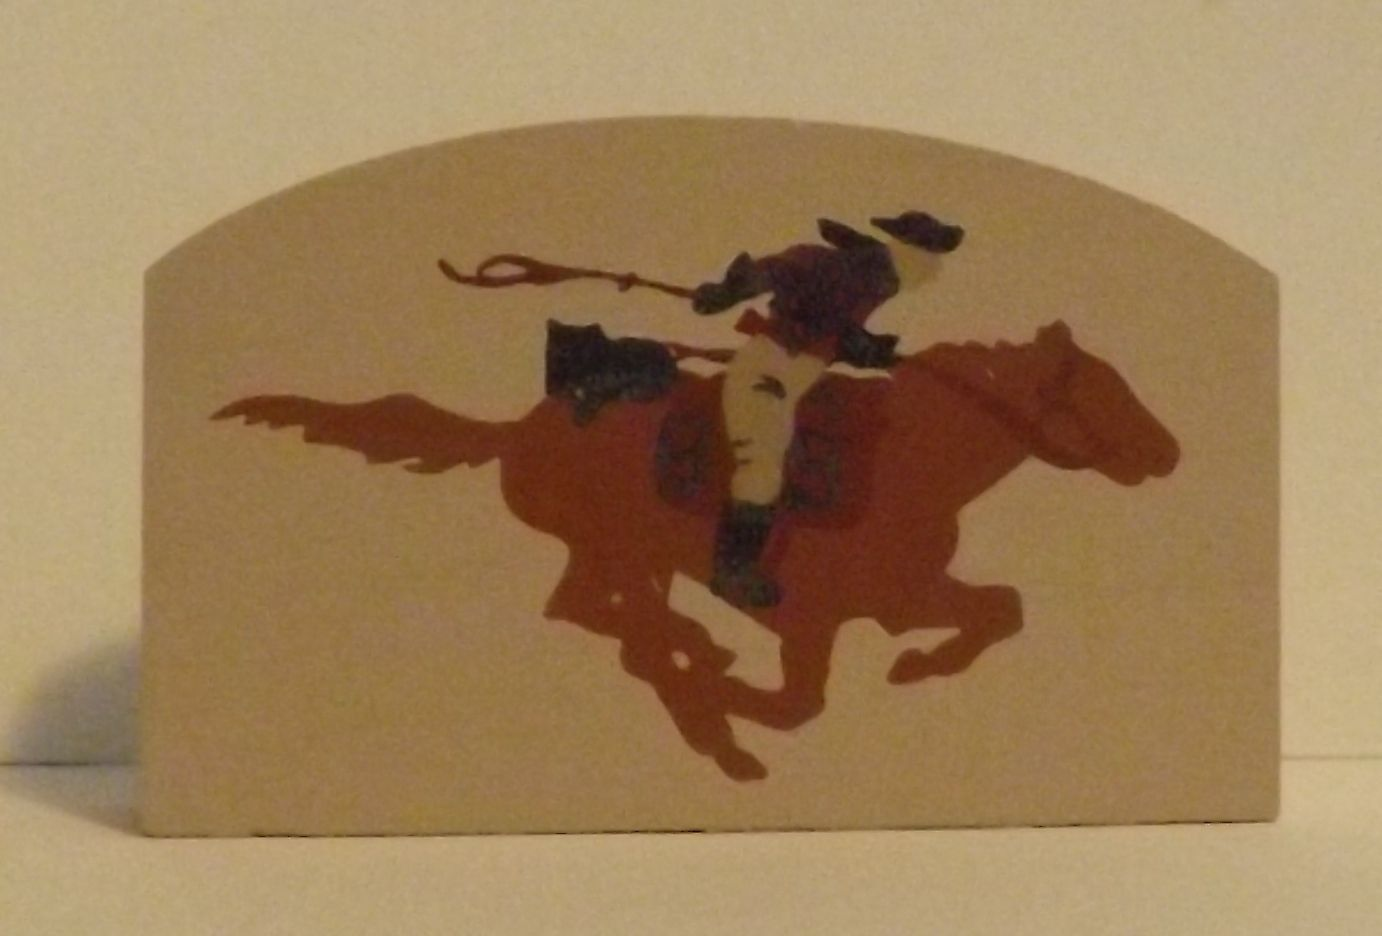 Cats Meow Accessory Man Riding a Horse